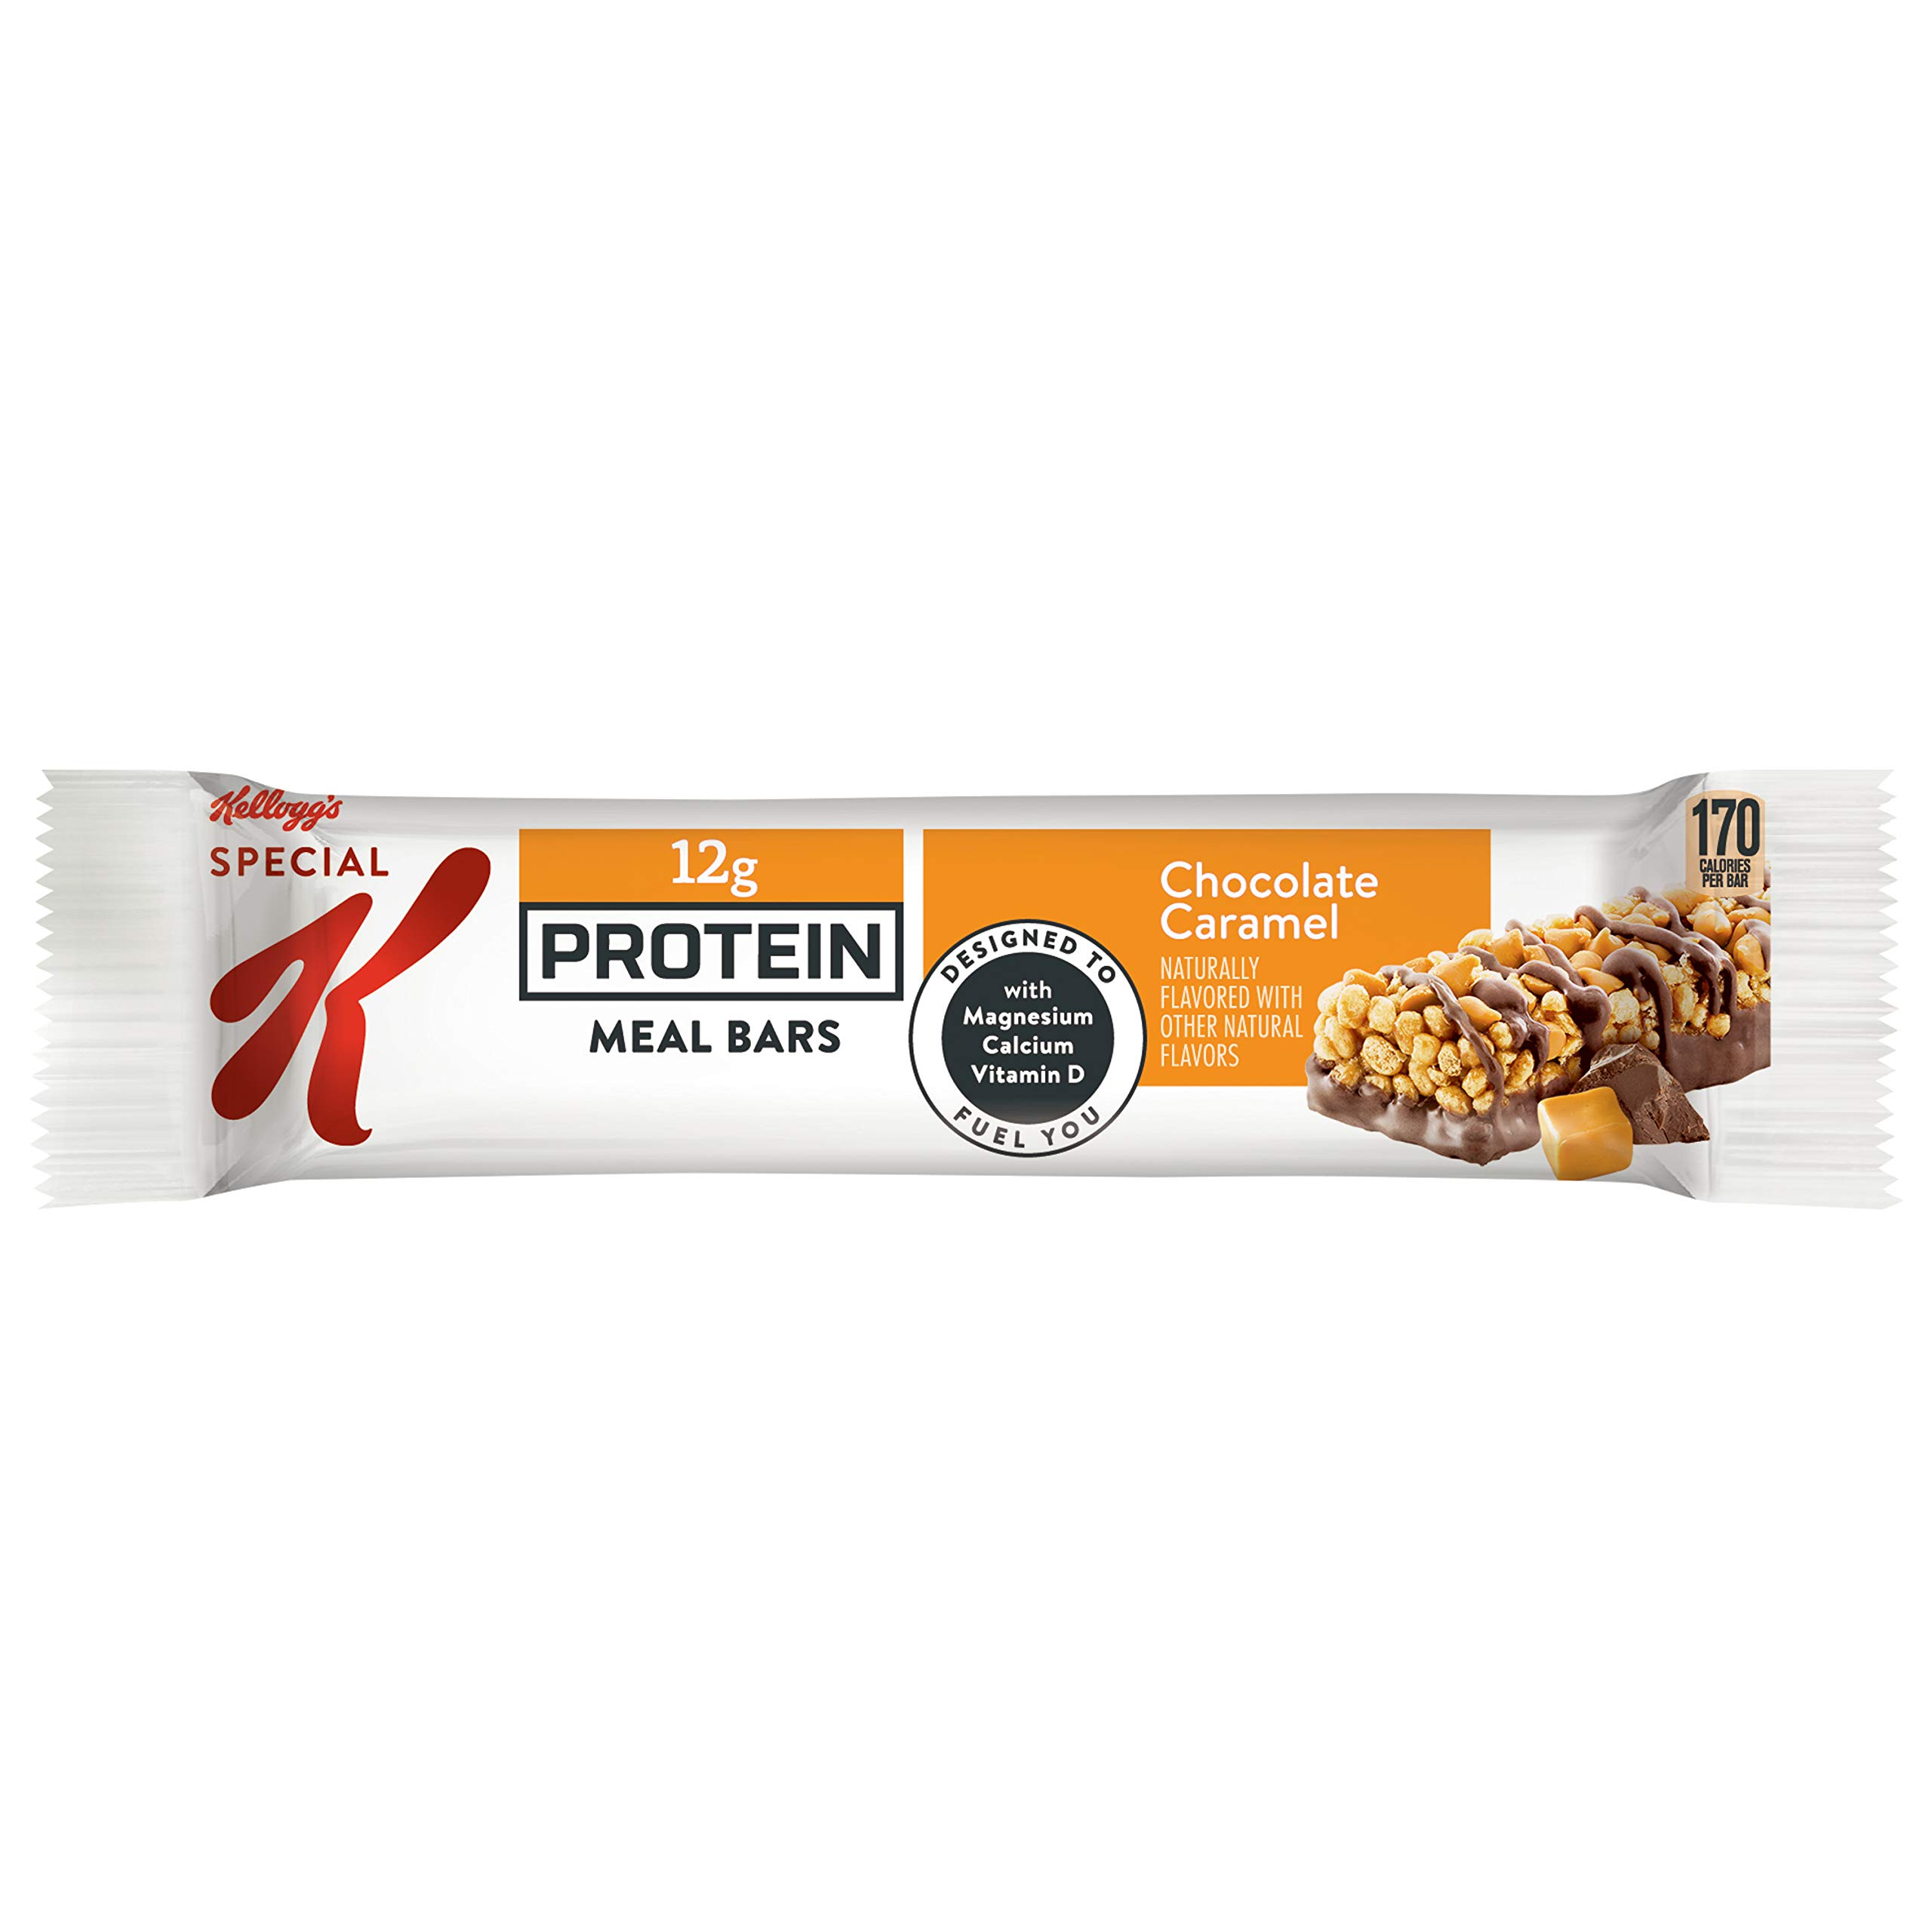 Kellogg's Special K Protein Meal Bars, Chocolate Caramel, Bulk Size, 48 Count (Pack of 6, 12.7 oz Trays) by Special K (Image #7)